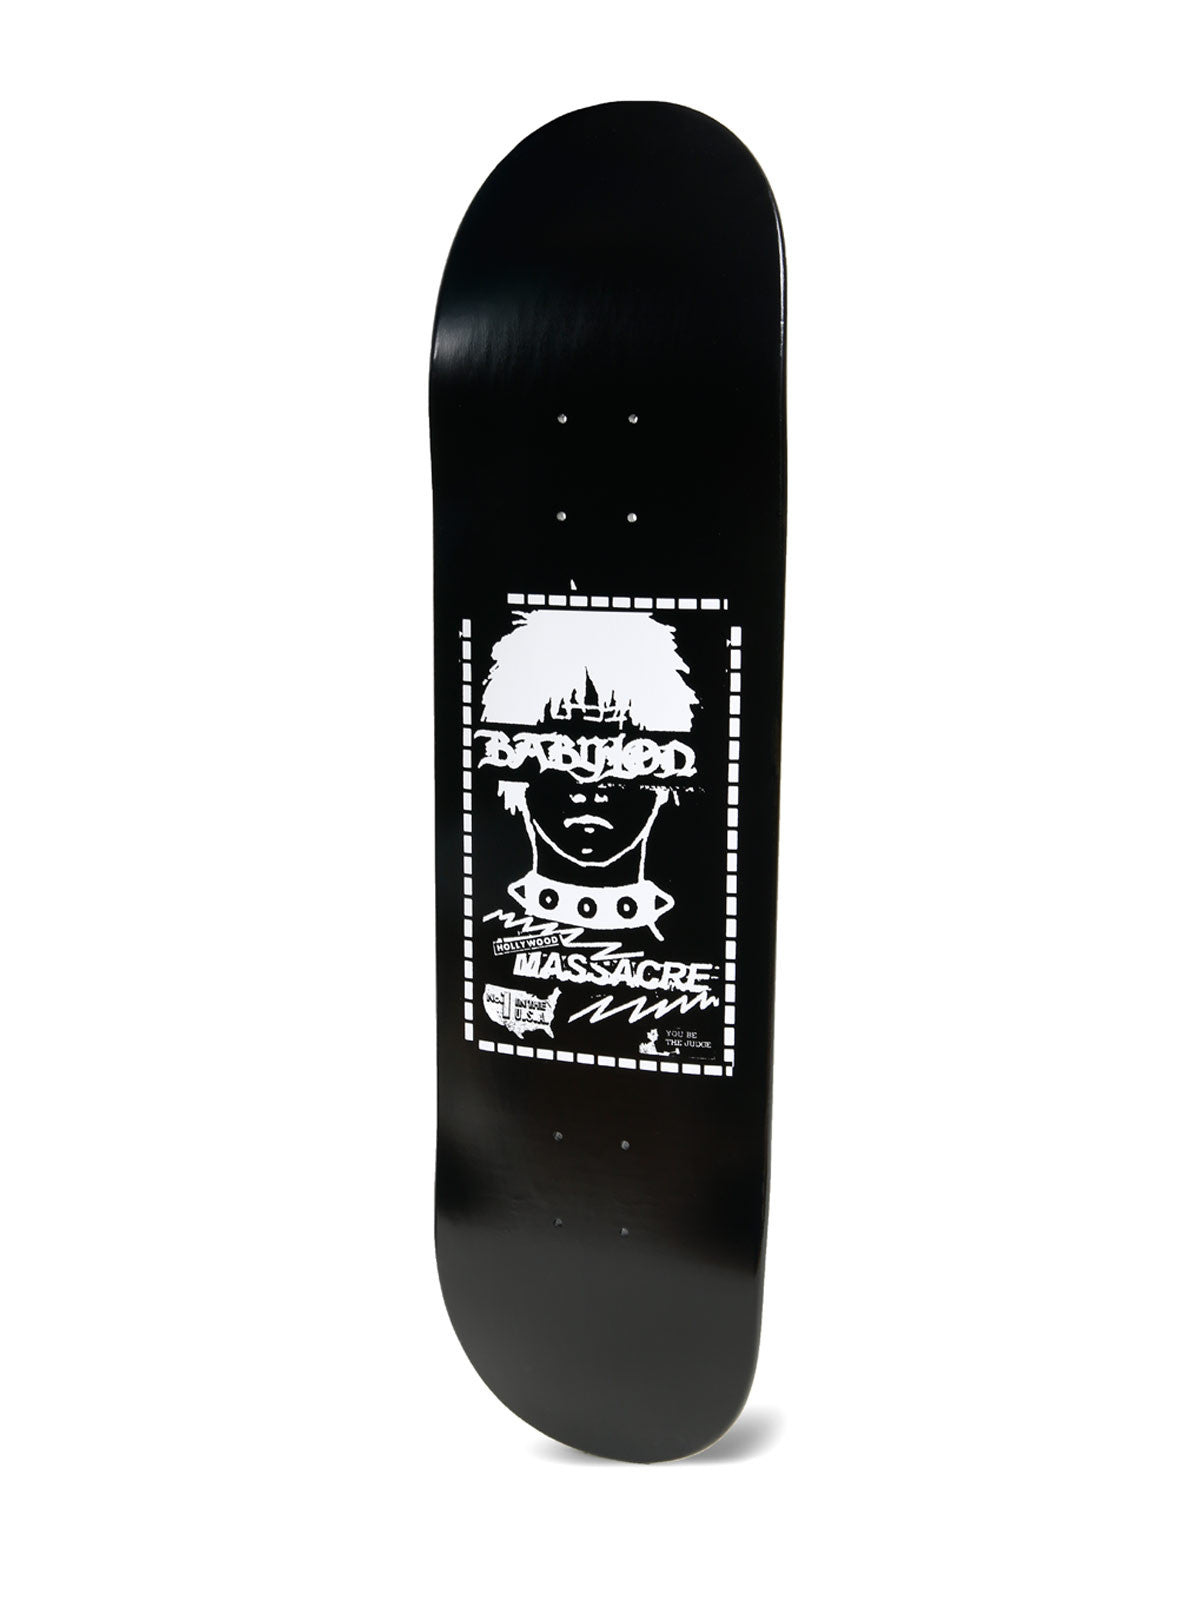 HOLLYWOOD MASSACRE DECK